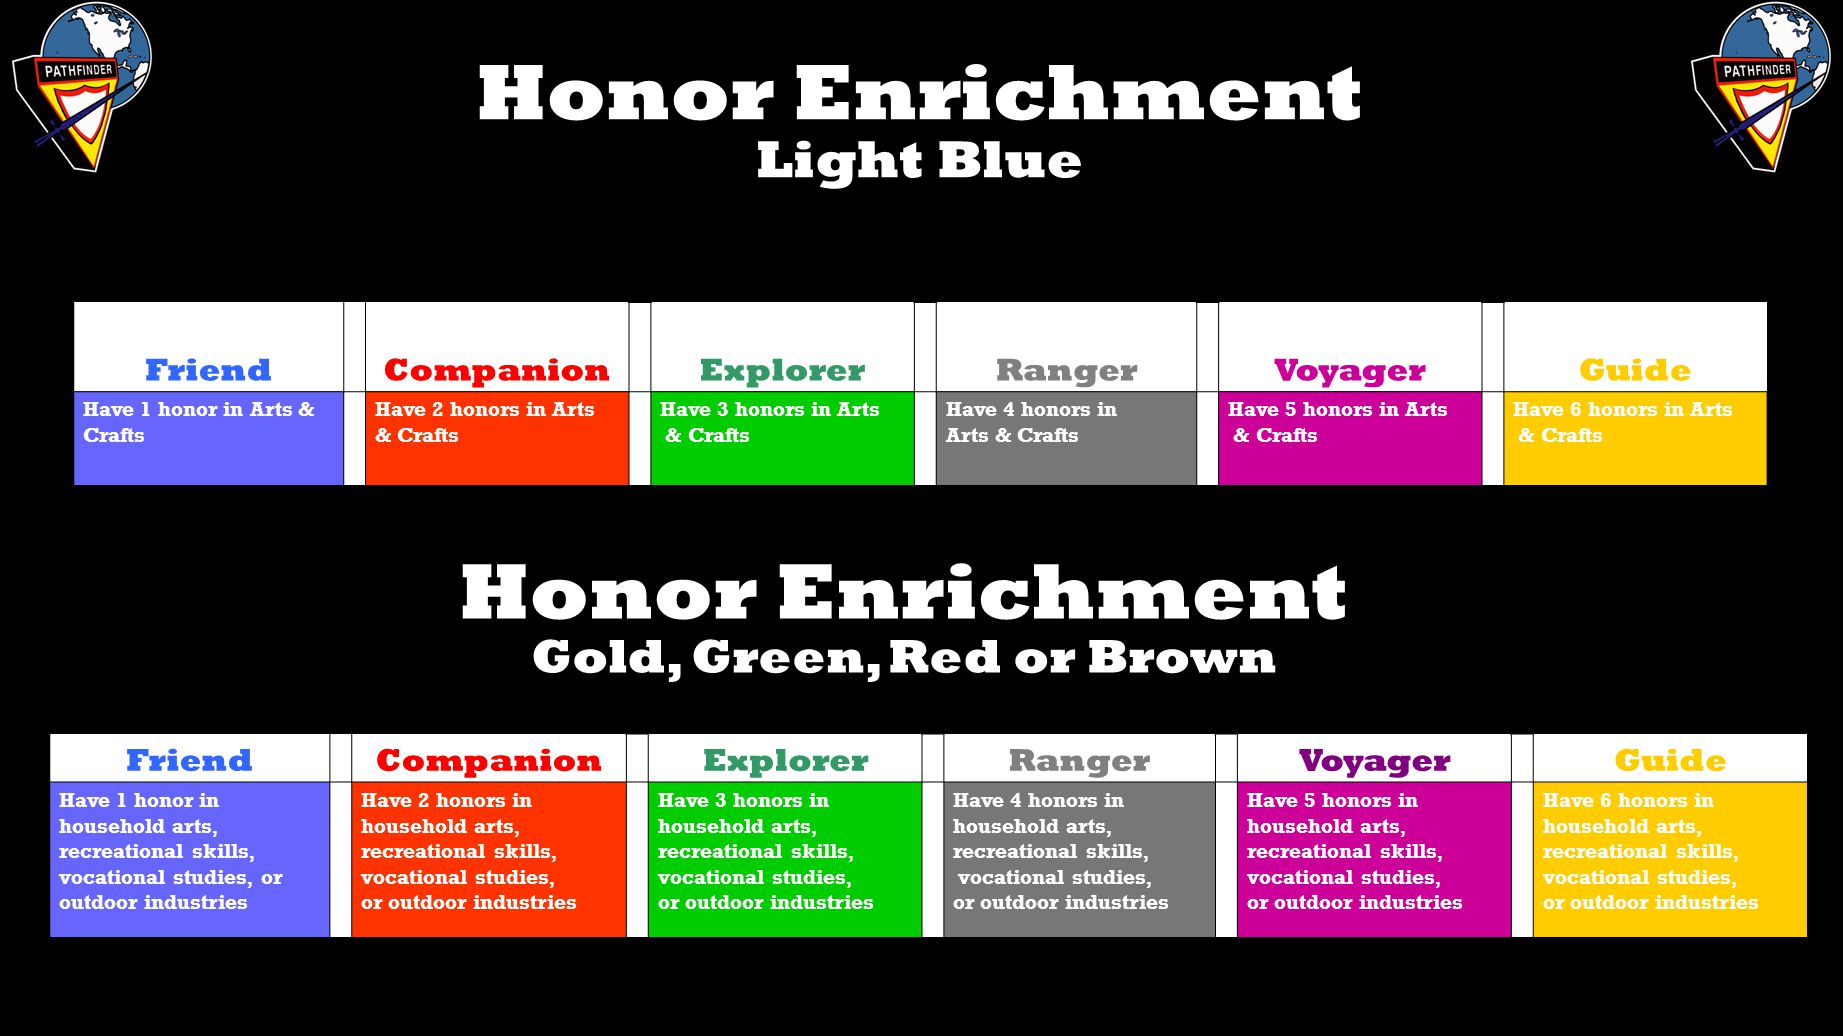 Honor Enrichment Light Blue Friend Companion Explorer Ranger Voyager Guide Have 1 honor in Arts & Crafts Have 2 honors in Arts & Crafts Have 3 honors in Arts & Crafts Have 4 honors in Arts & Crafts Have 5 honors in Arts & Crafts Have 6 honors in Arts & Crafts Honor Enrichment Gold, Green, Red or Brown Friend Companion Explorer Ranger Voyager Guide Have 1 honor in household arts, recreational skills, vocational studies, or outdoor industries Have 2 honors in household arts, recreational skills, vocational studies, or outdoor industries Have 3 honors in household arts, recreational skills, vocational studies, or outdoor industries Have 4 honors in household arts, recreational skills, vocational studies, or outdoor industries Have 5 honors in household arts, recreational skills, vocational studies, or outdoor industries Have 6 honors in household arts, recreational skills, vocational studies, or outdoor industries